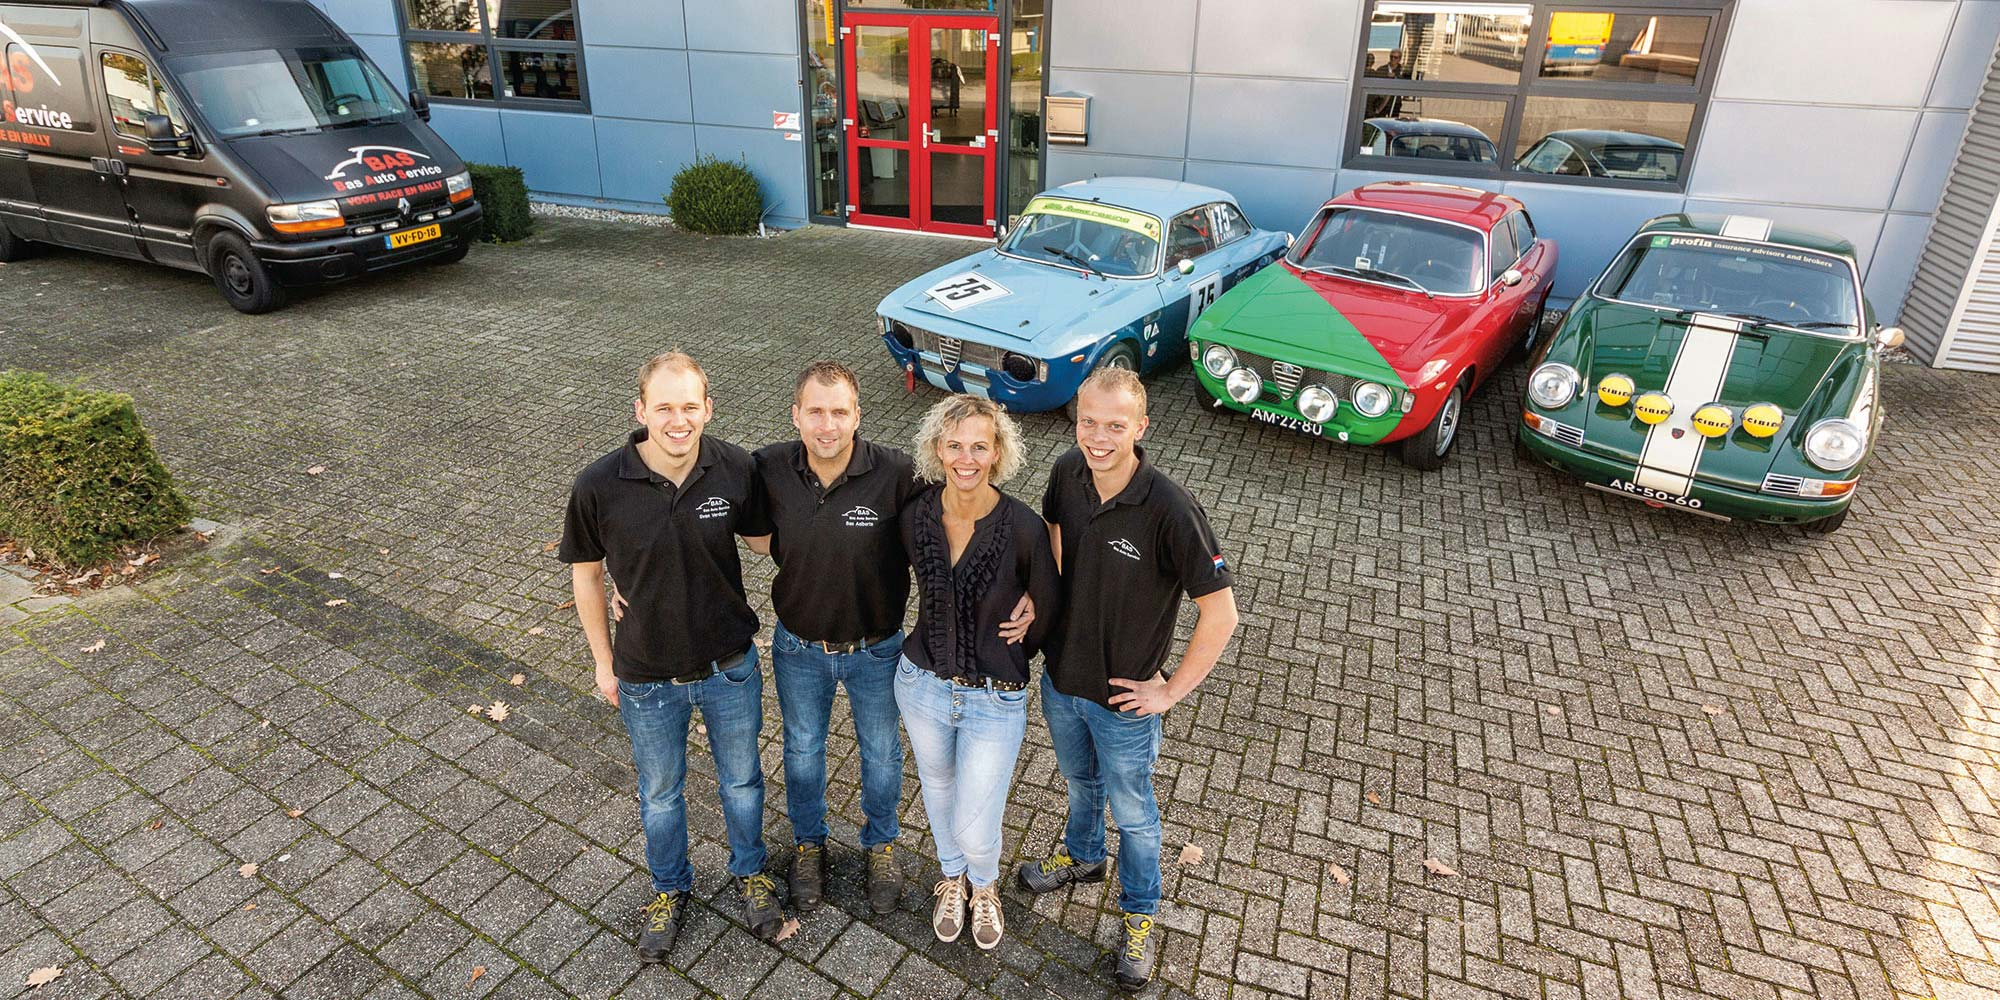 https://www.basautoservice.nl/.cm4all/mediadb/Header%20home%20def/_MG_2038.jpg